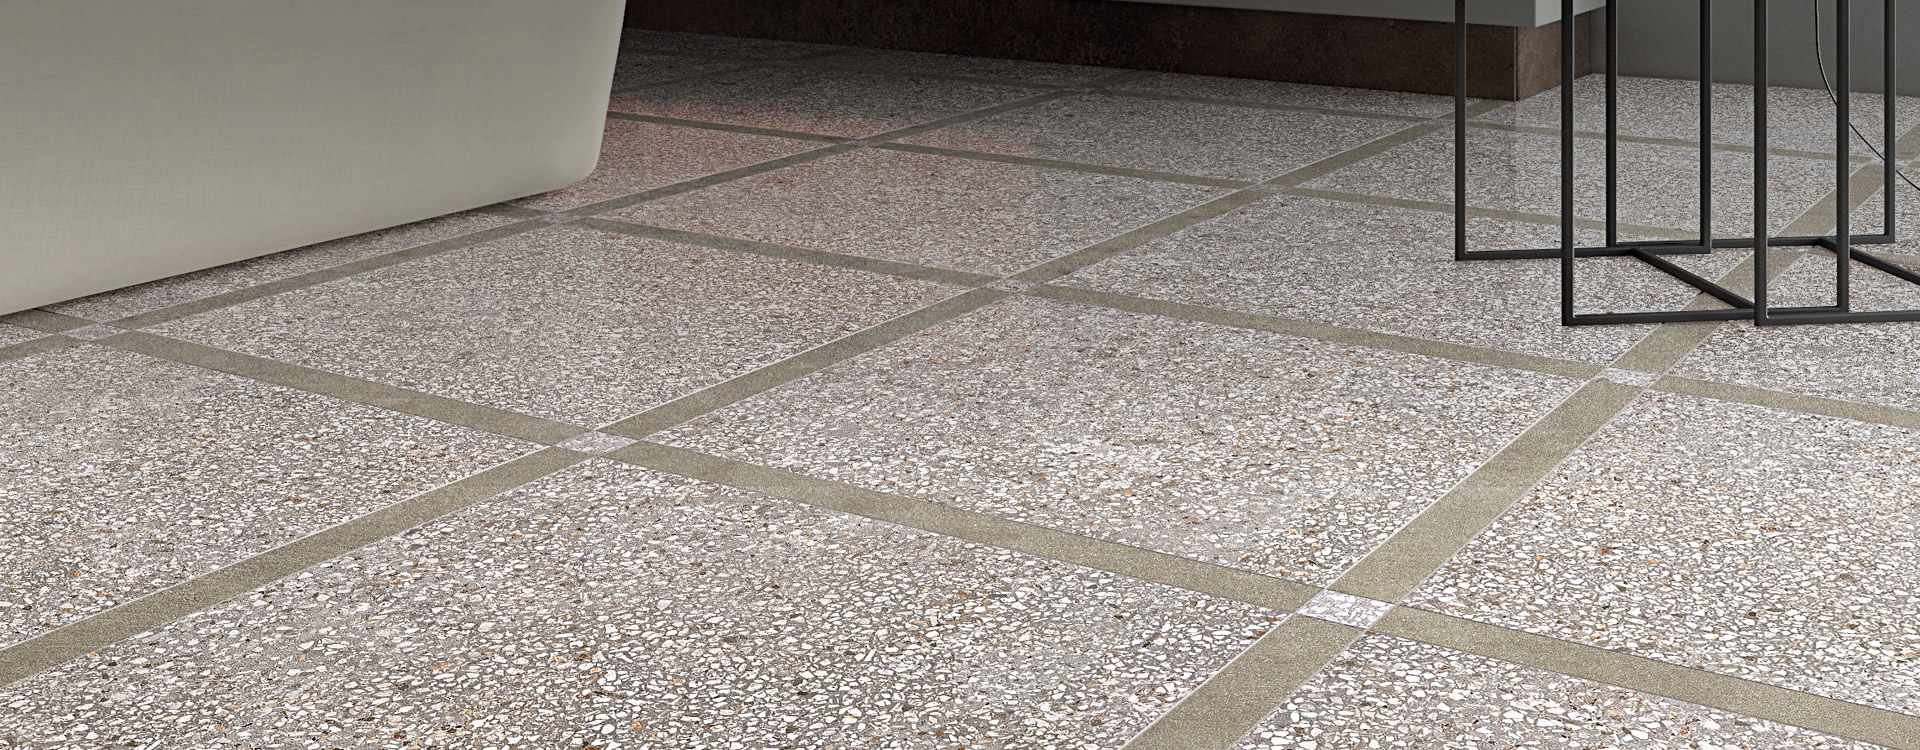 High Quality Terrazzo Look Porcelain Tile From Valensa Ceramics